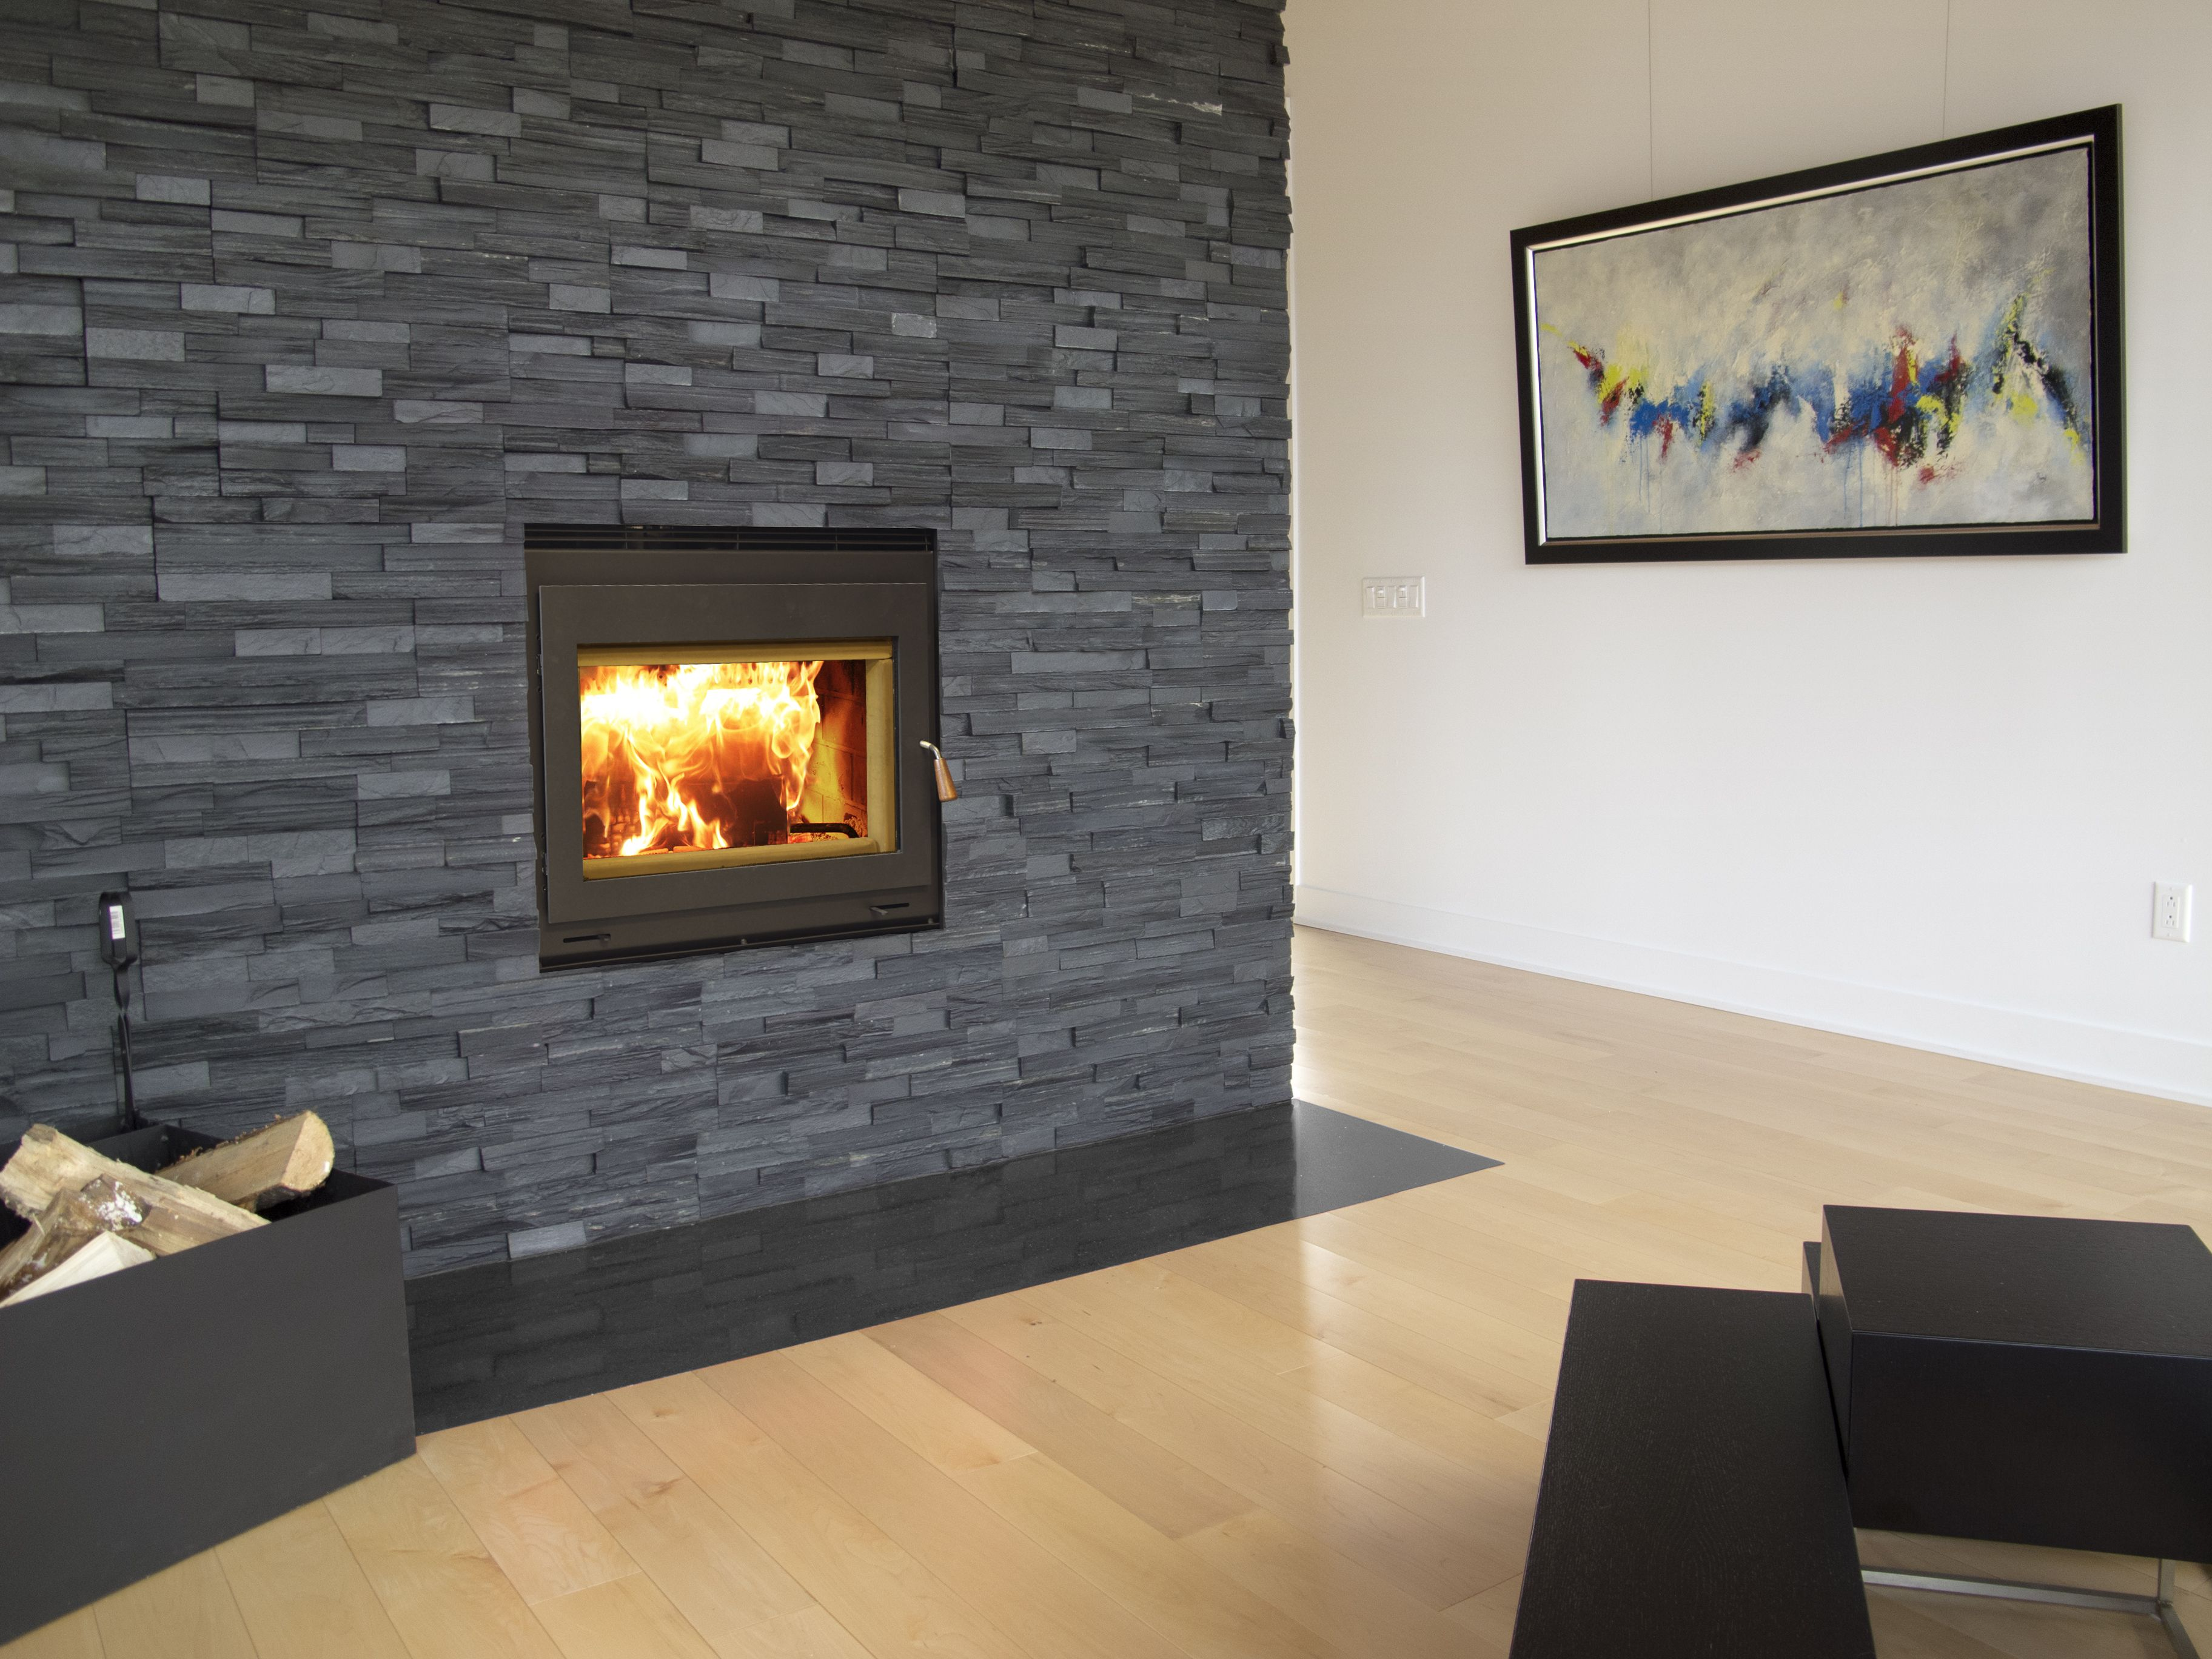 Rsf Wood Burning Fireplace Can Heat More Than Just One Room With